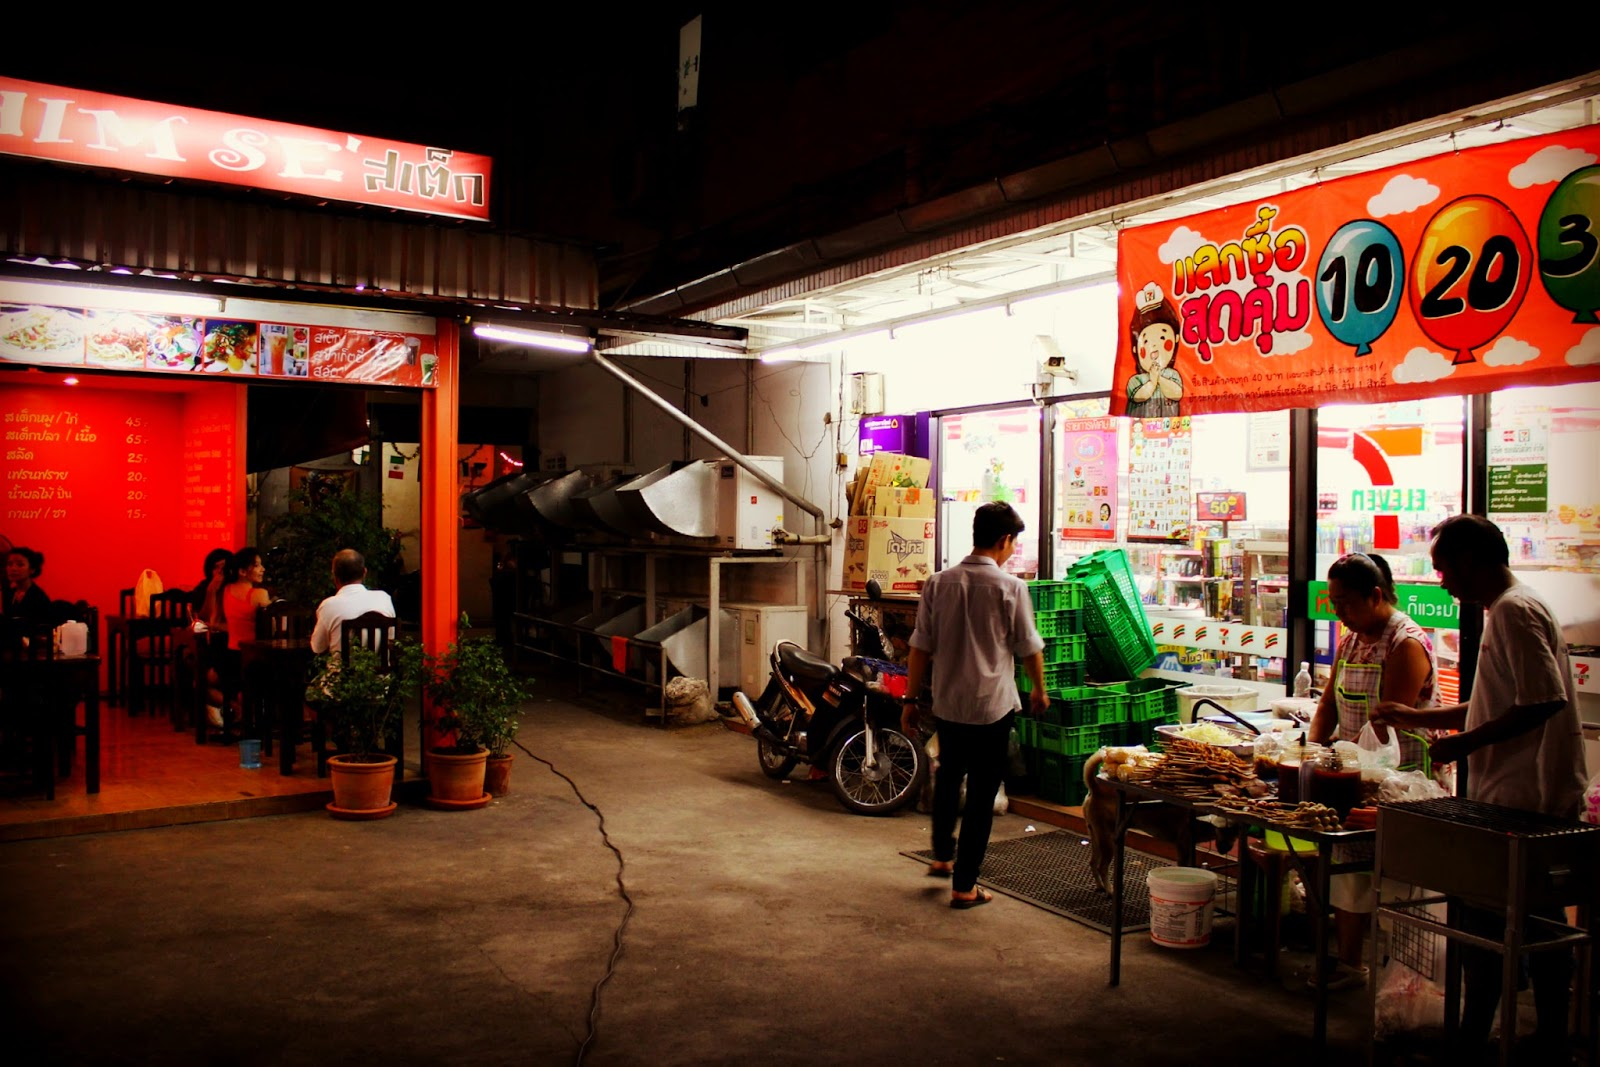 Thai takeaway street food